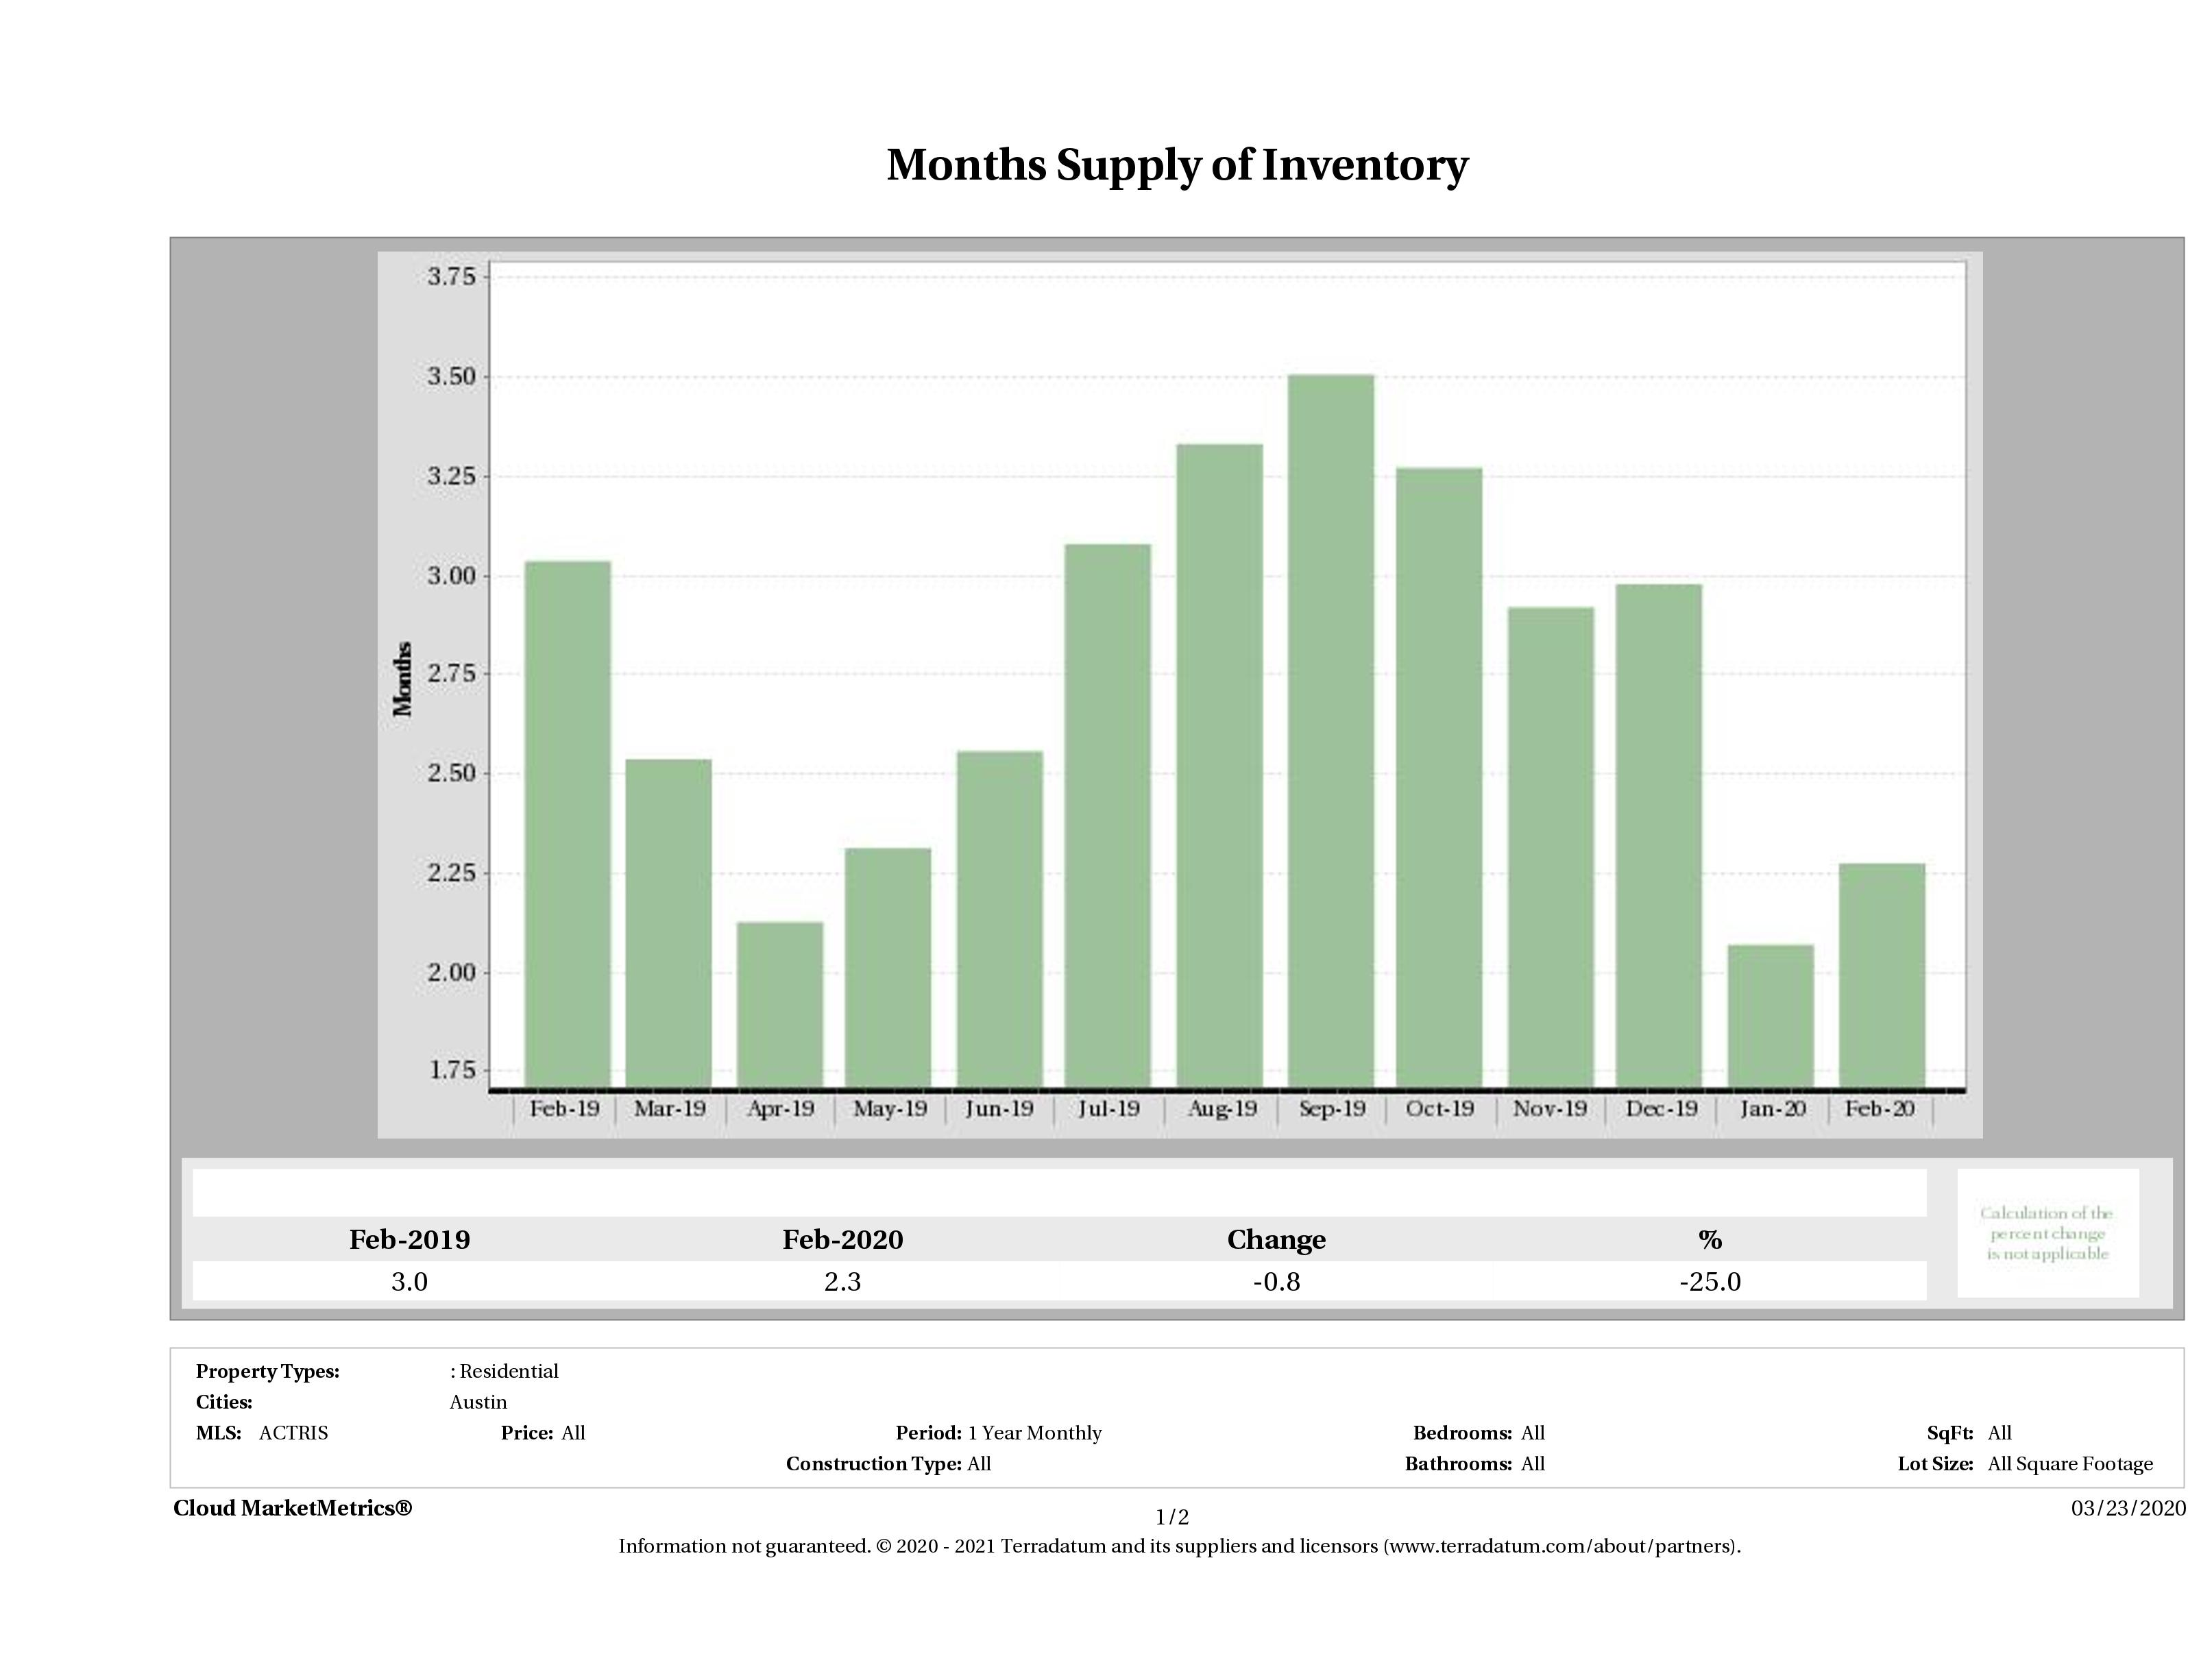 months supply of condo inventory February 2020